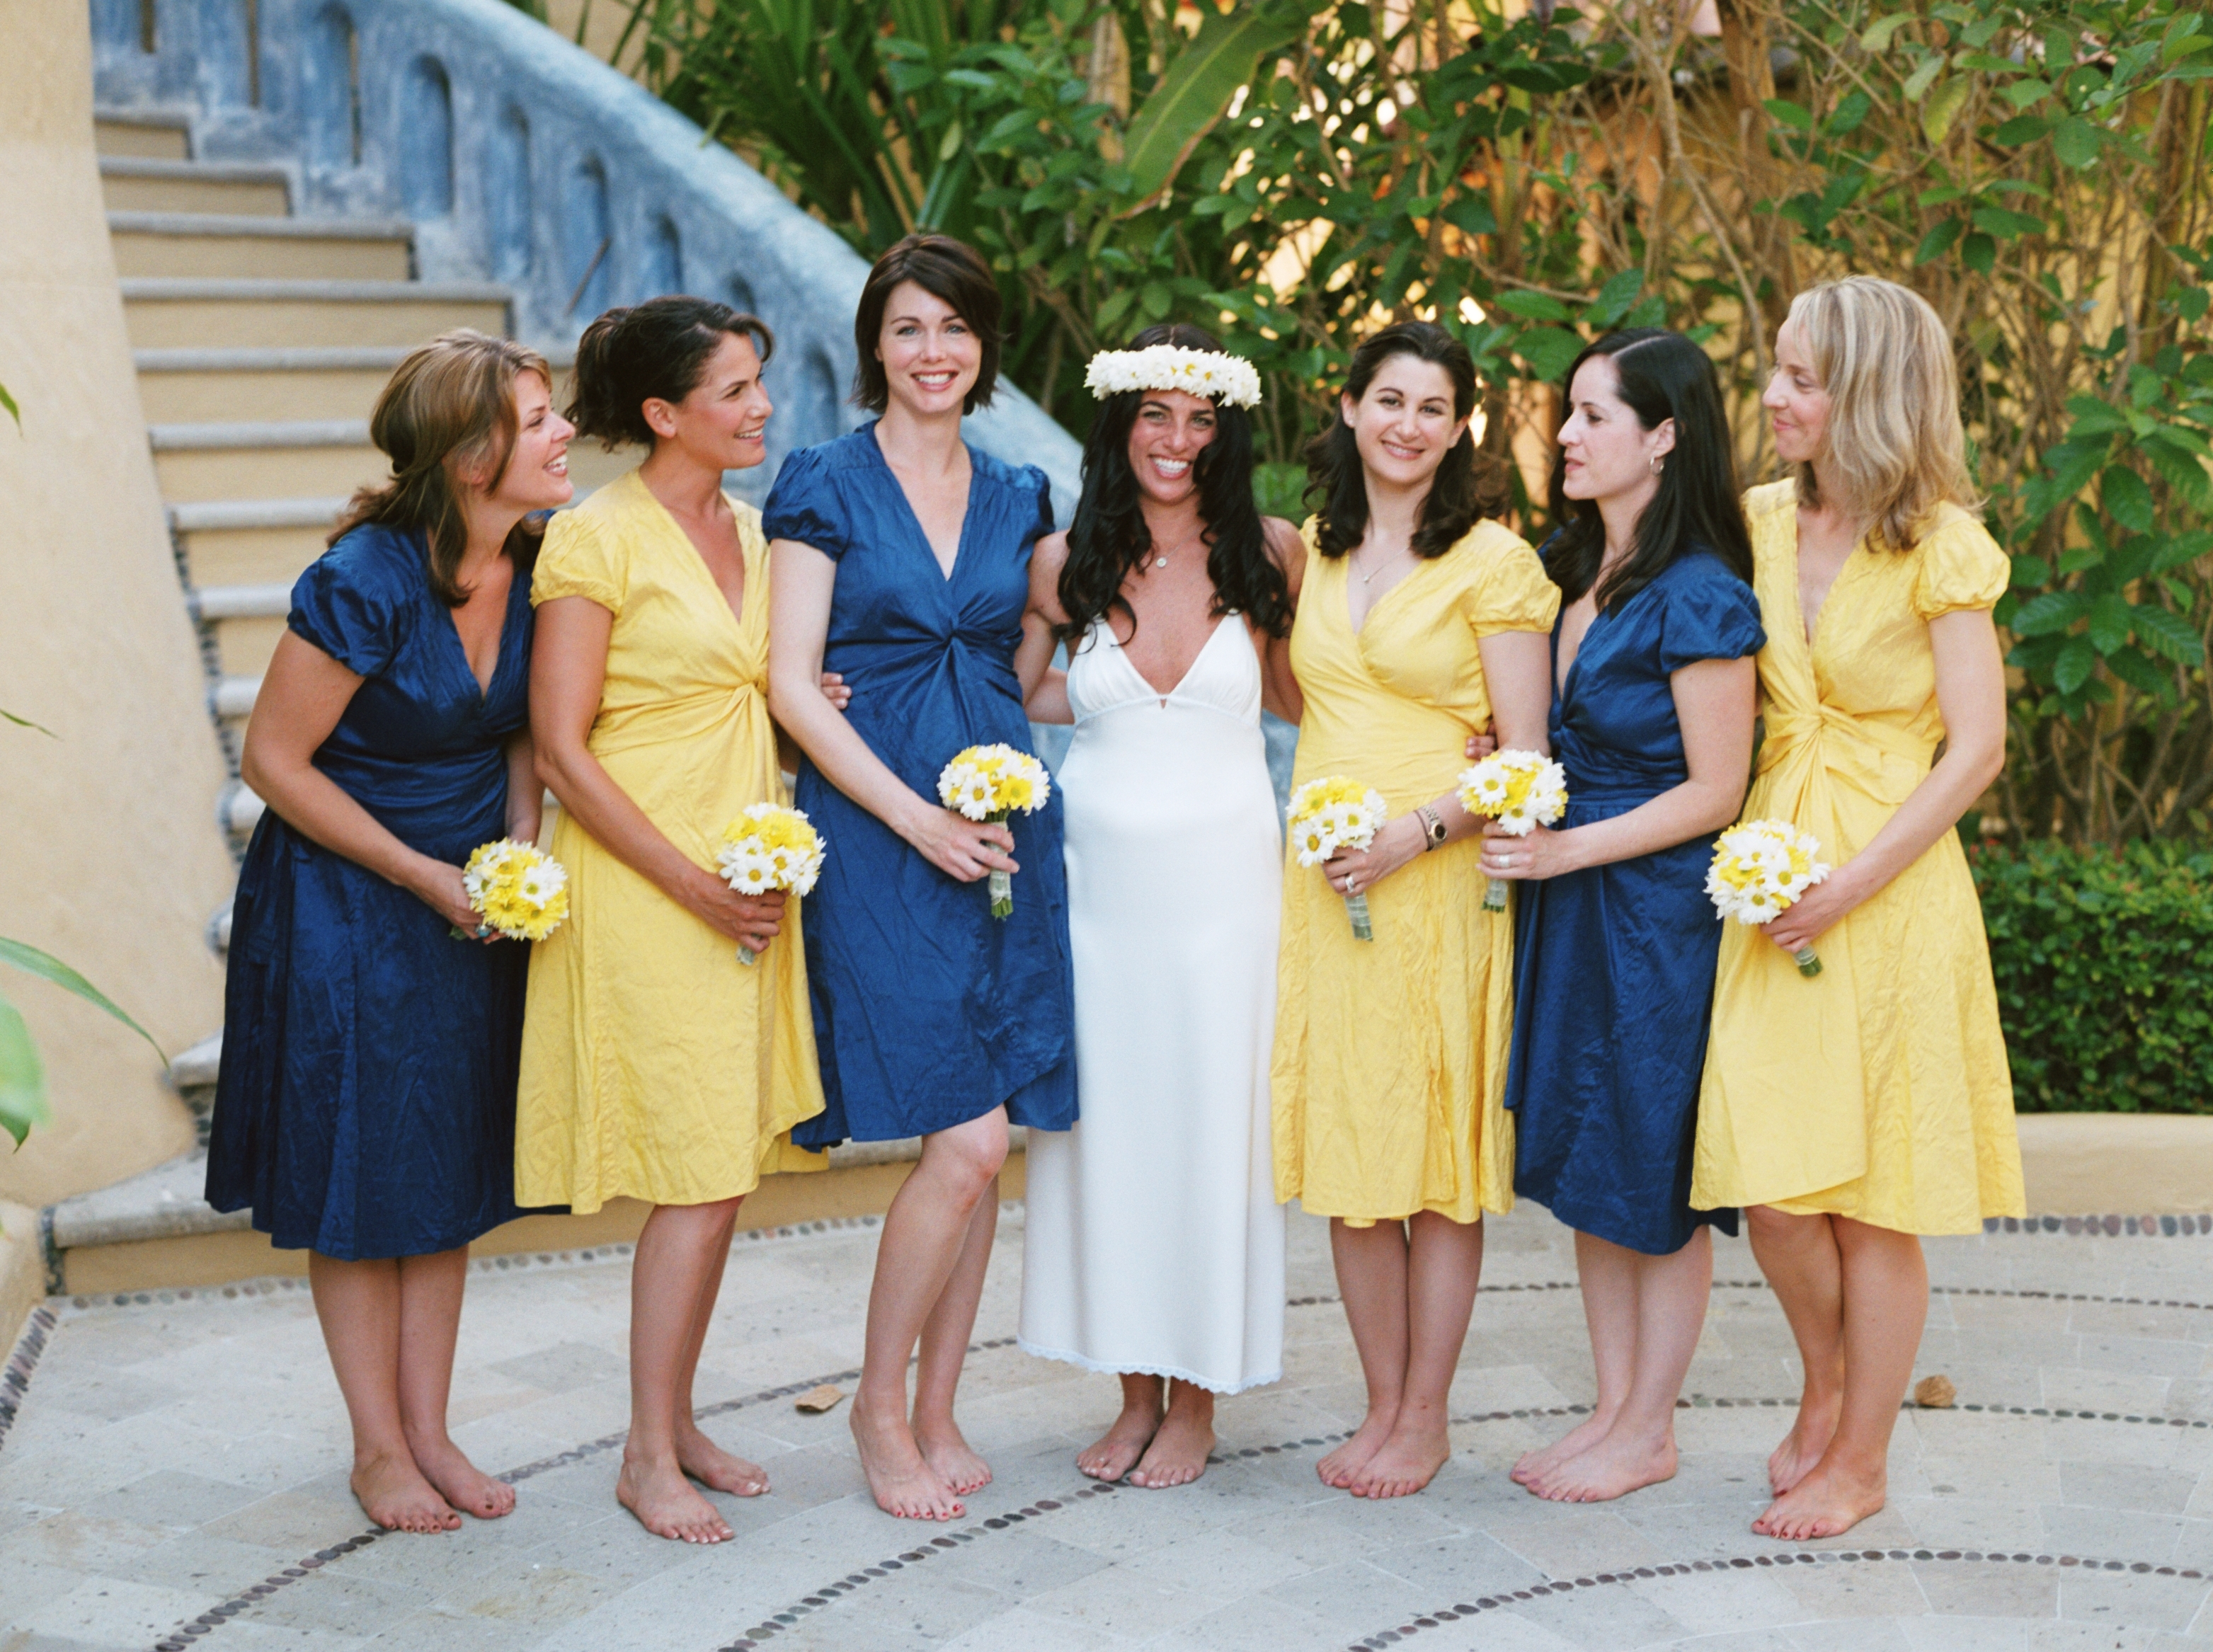 Bridesmaids, Bridesmaids Dresses, Destinations, Fashion, yellow, blue, Destination Weddings, Mexico, Beach Weddings, Wedding, Nautical, Navy, Mexico weddings, The tides zihuatanejo, Silk wrap dresses